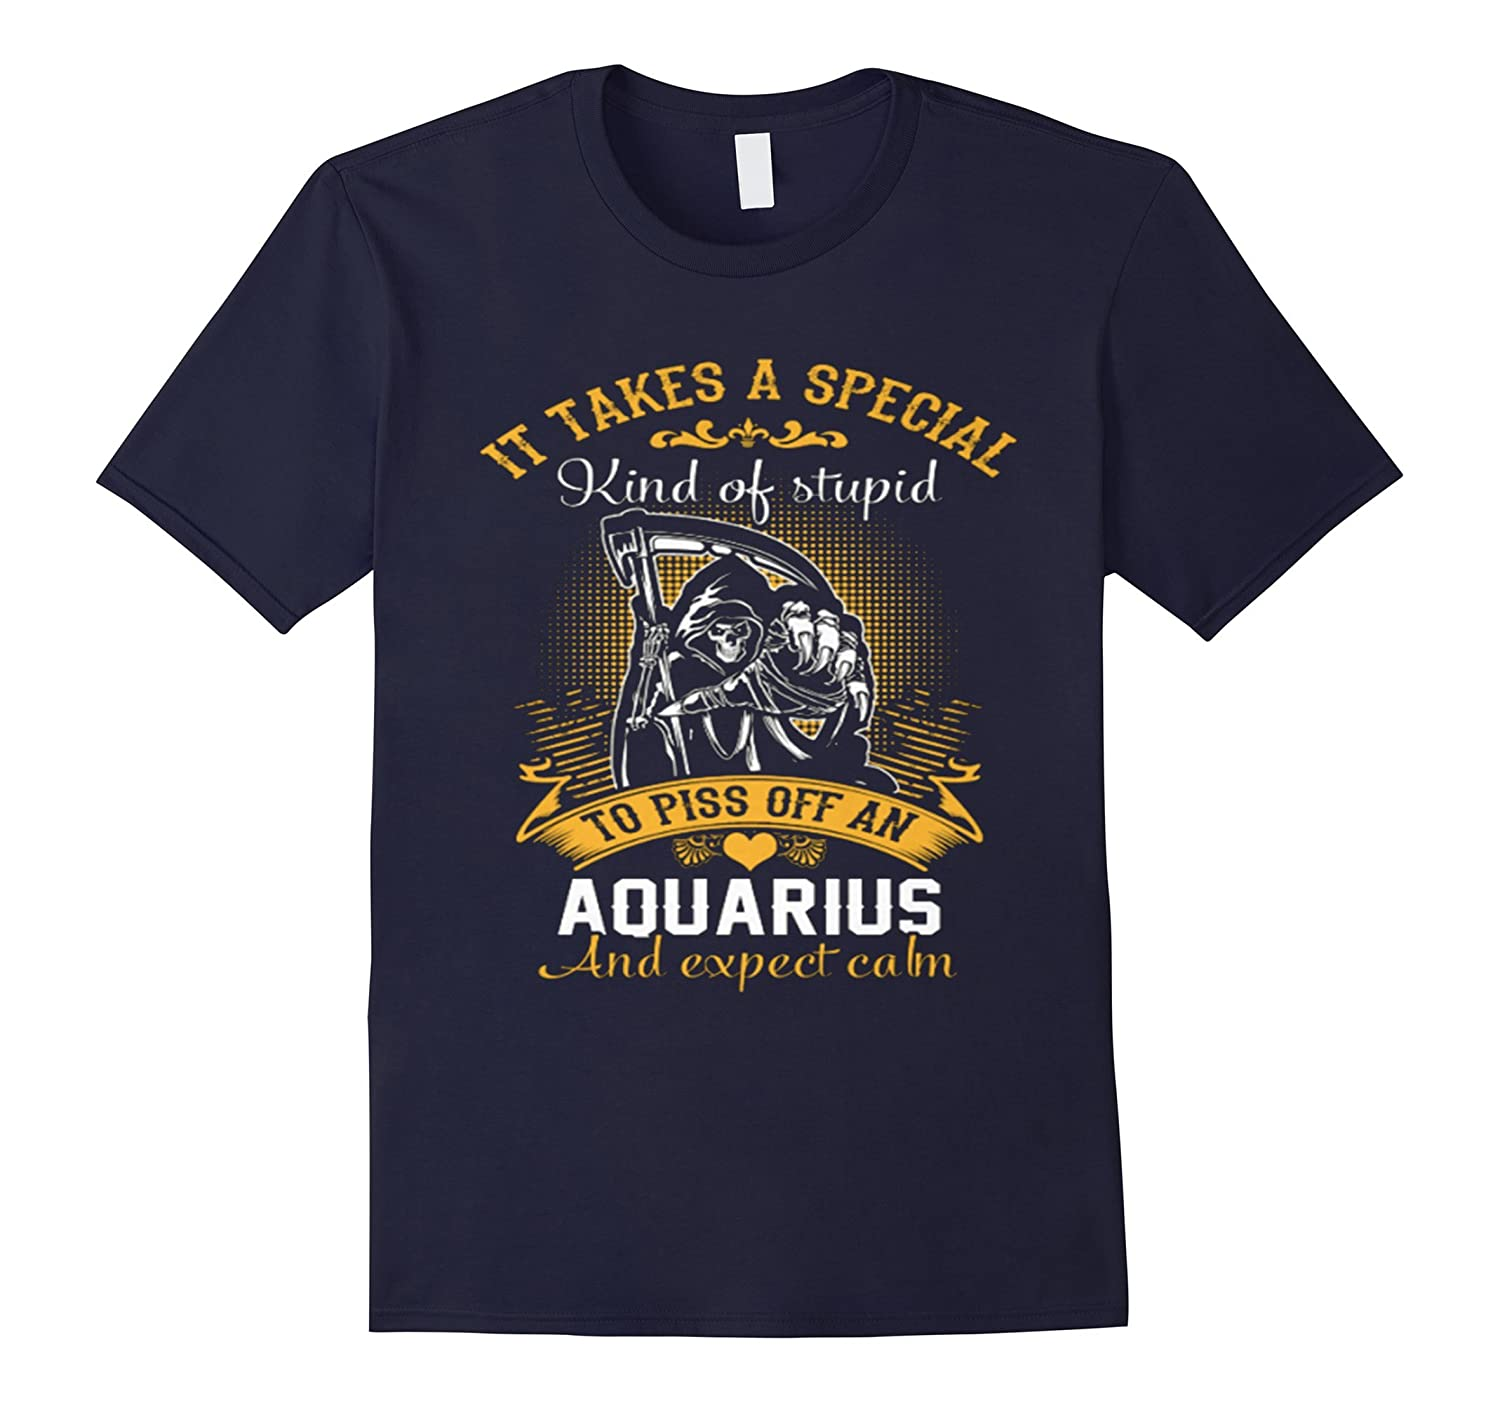 It takes a special kind of stupid to piss off an Aquarius-TD